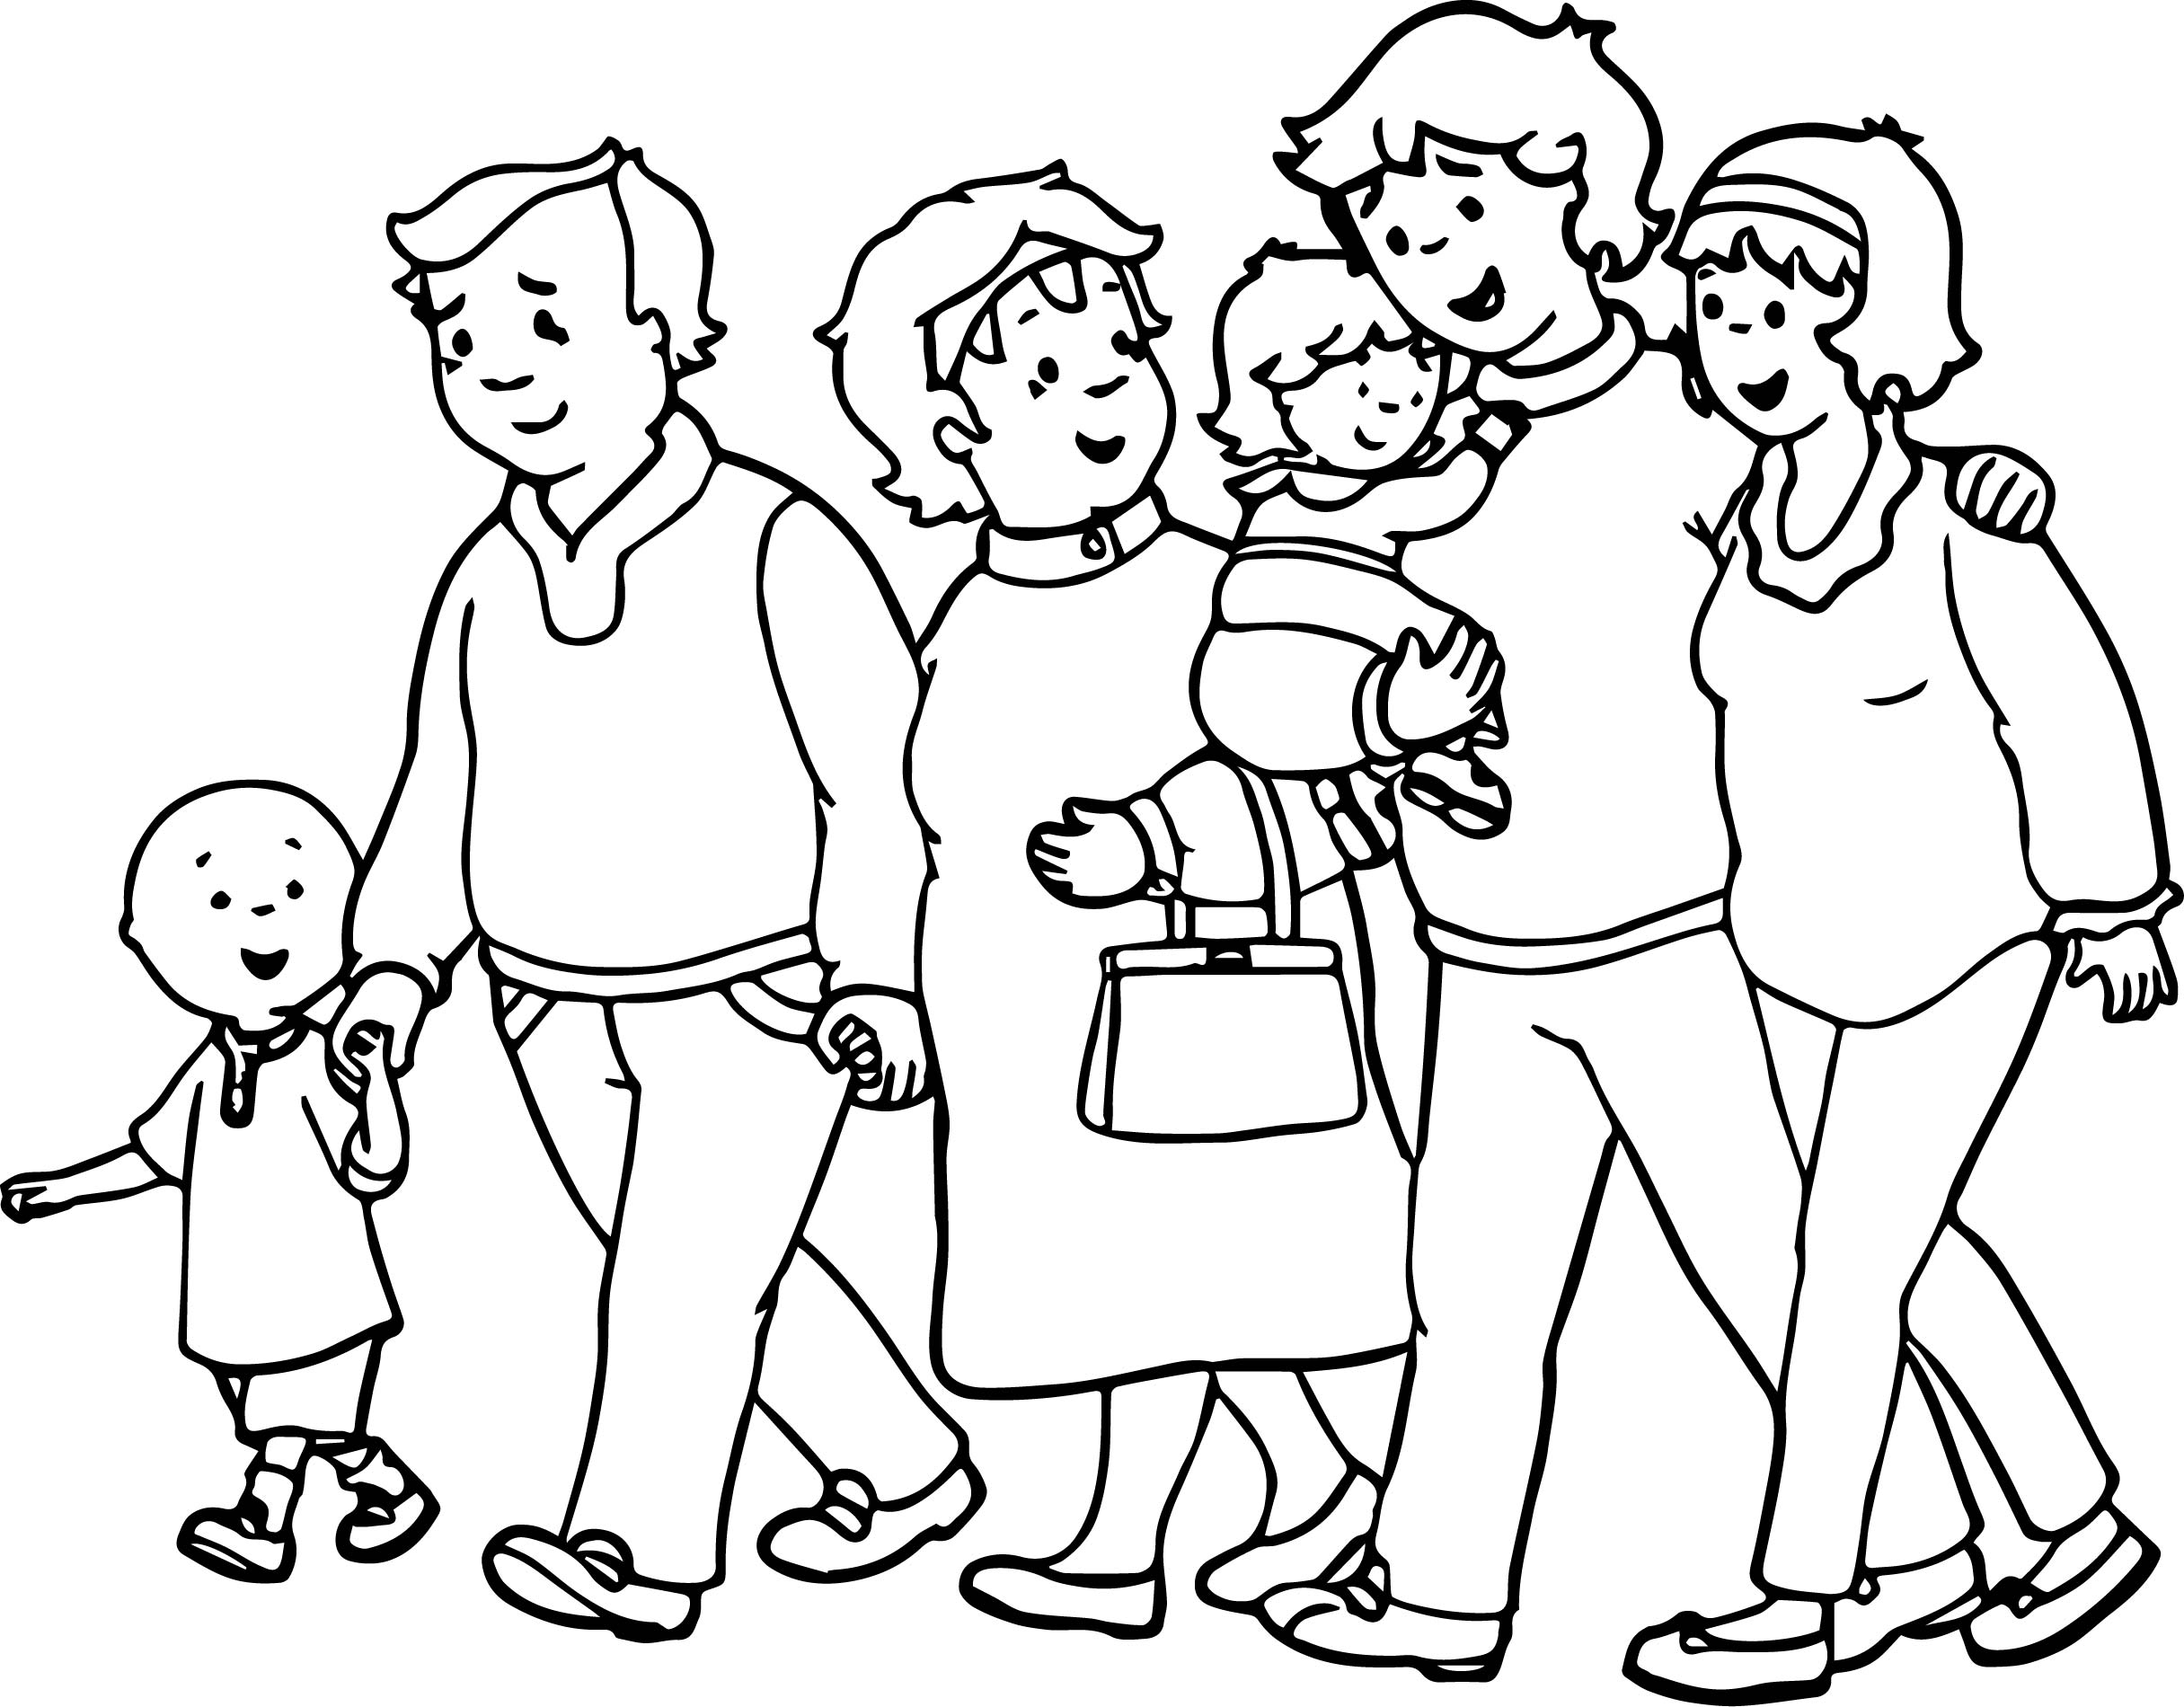 Gambar Family Duck Coloring Pages Coloring Pages Jpeg Png Gif - Best ...